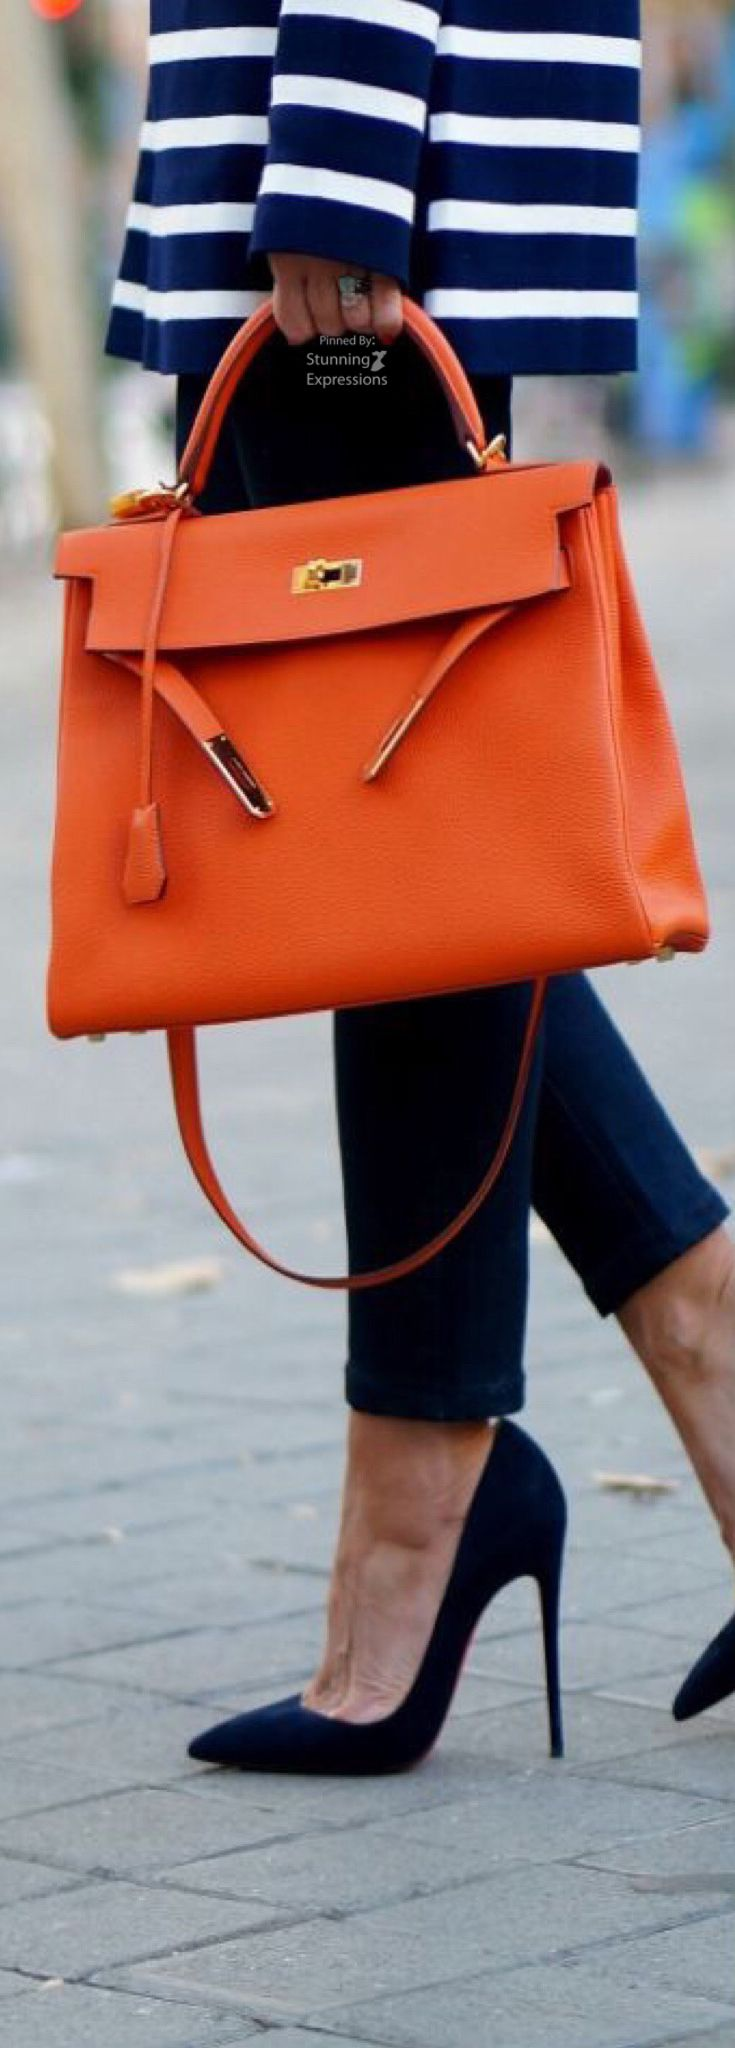 Kelly Bag - Hermes